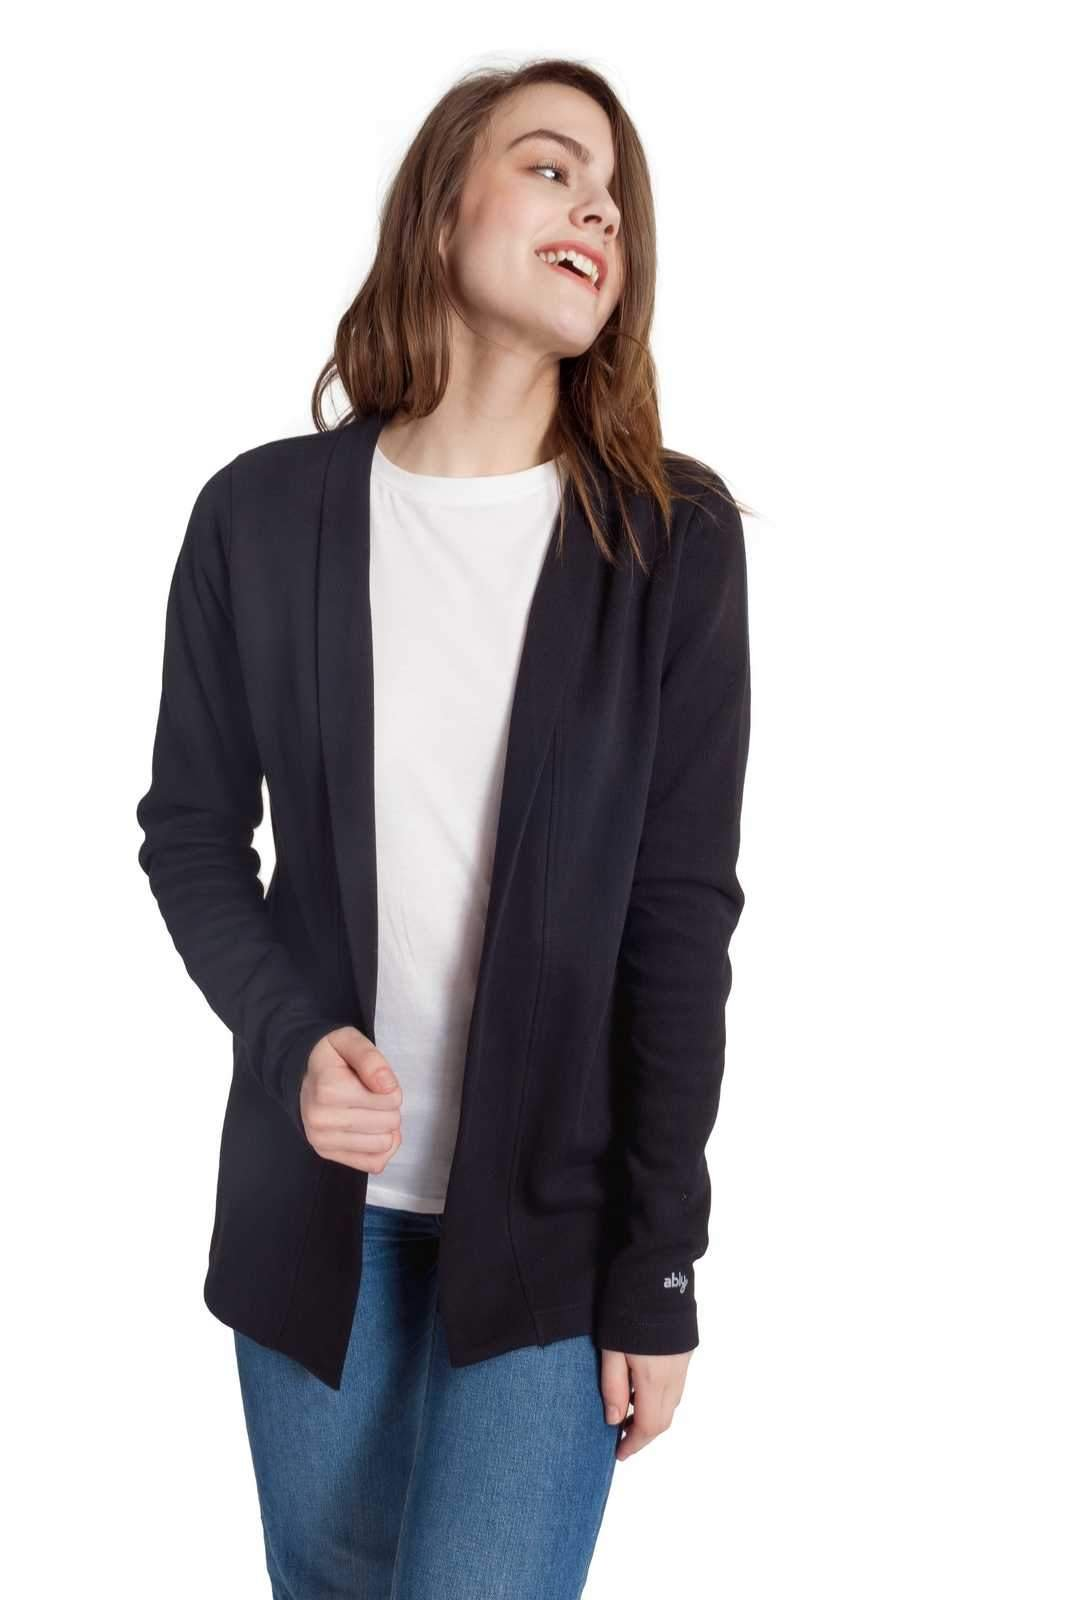 Ably Apparel Celeste Cardigan | repels liquids, Stains, and Odors